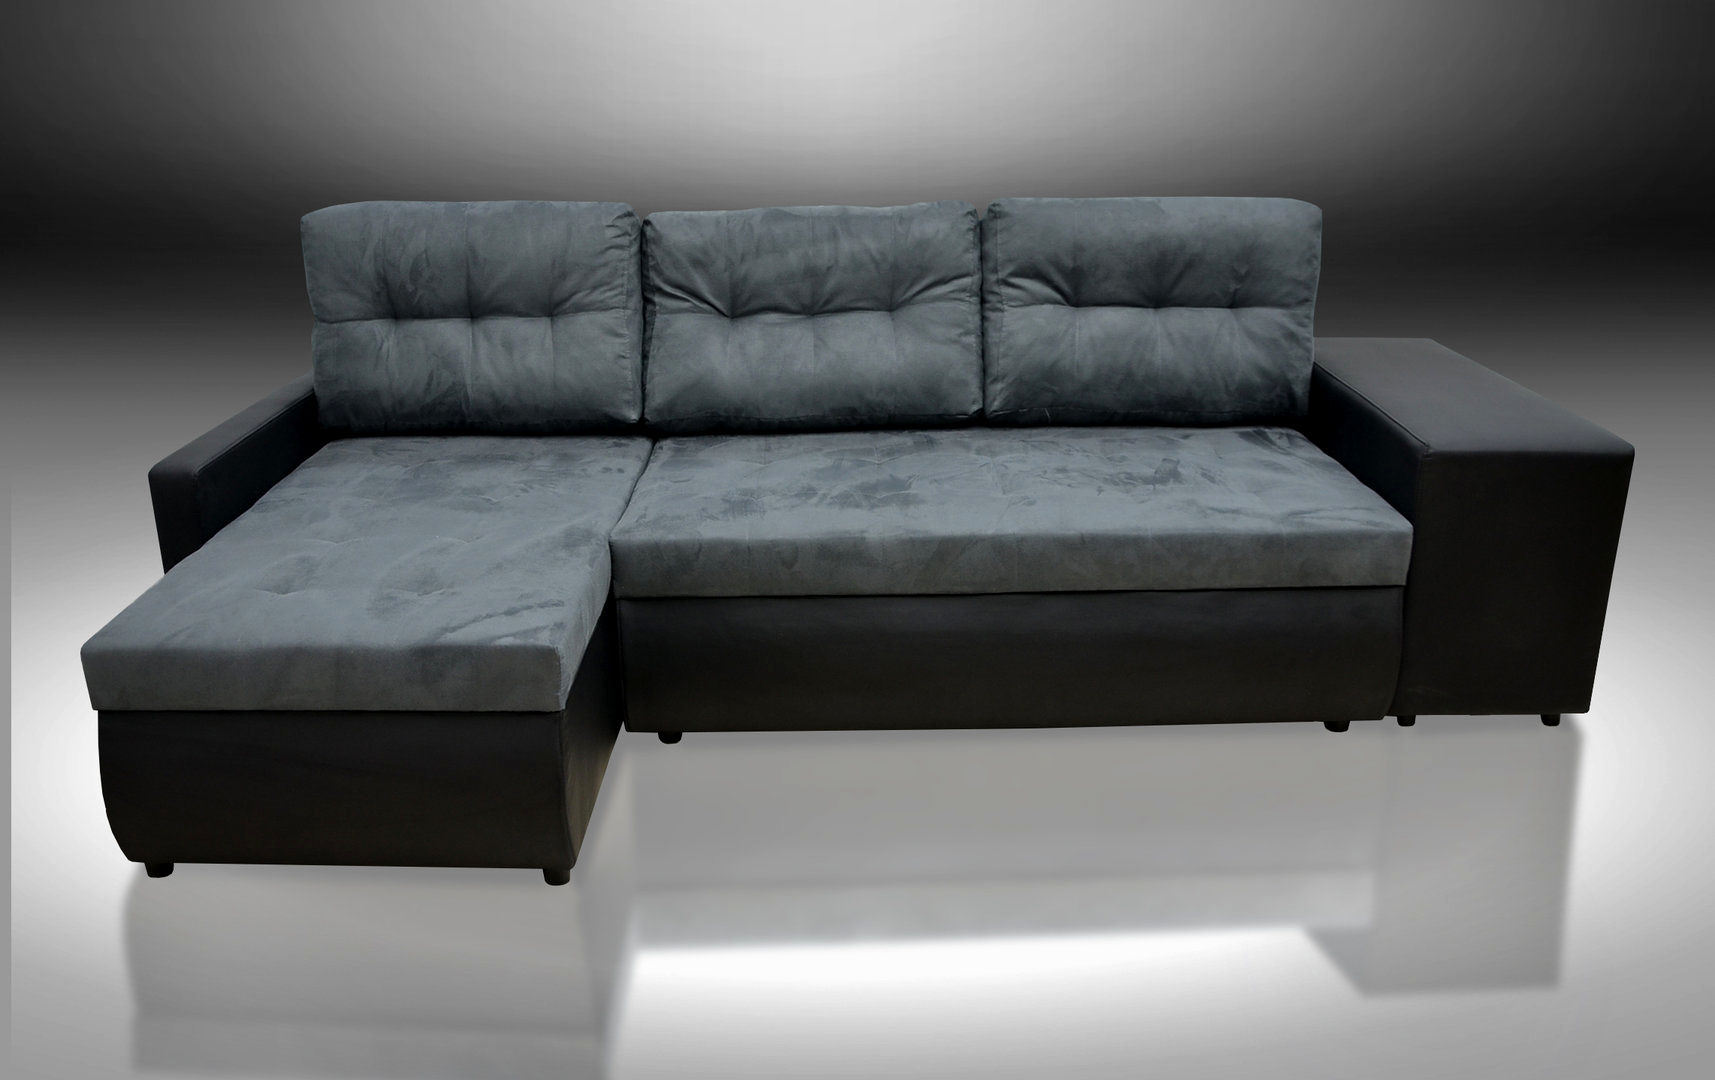 cool walmart leather sofa inspiration-Fresh Walmart Leather sofa Online